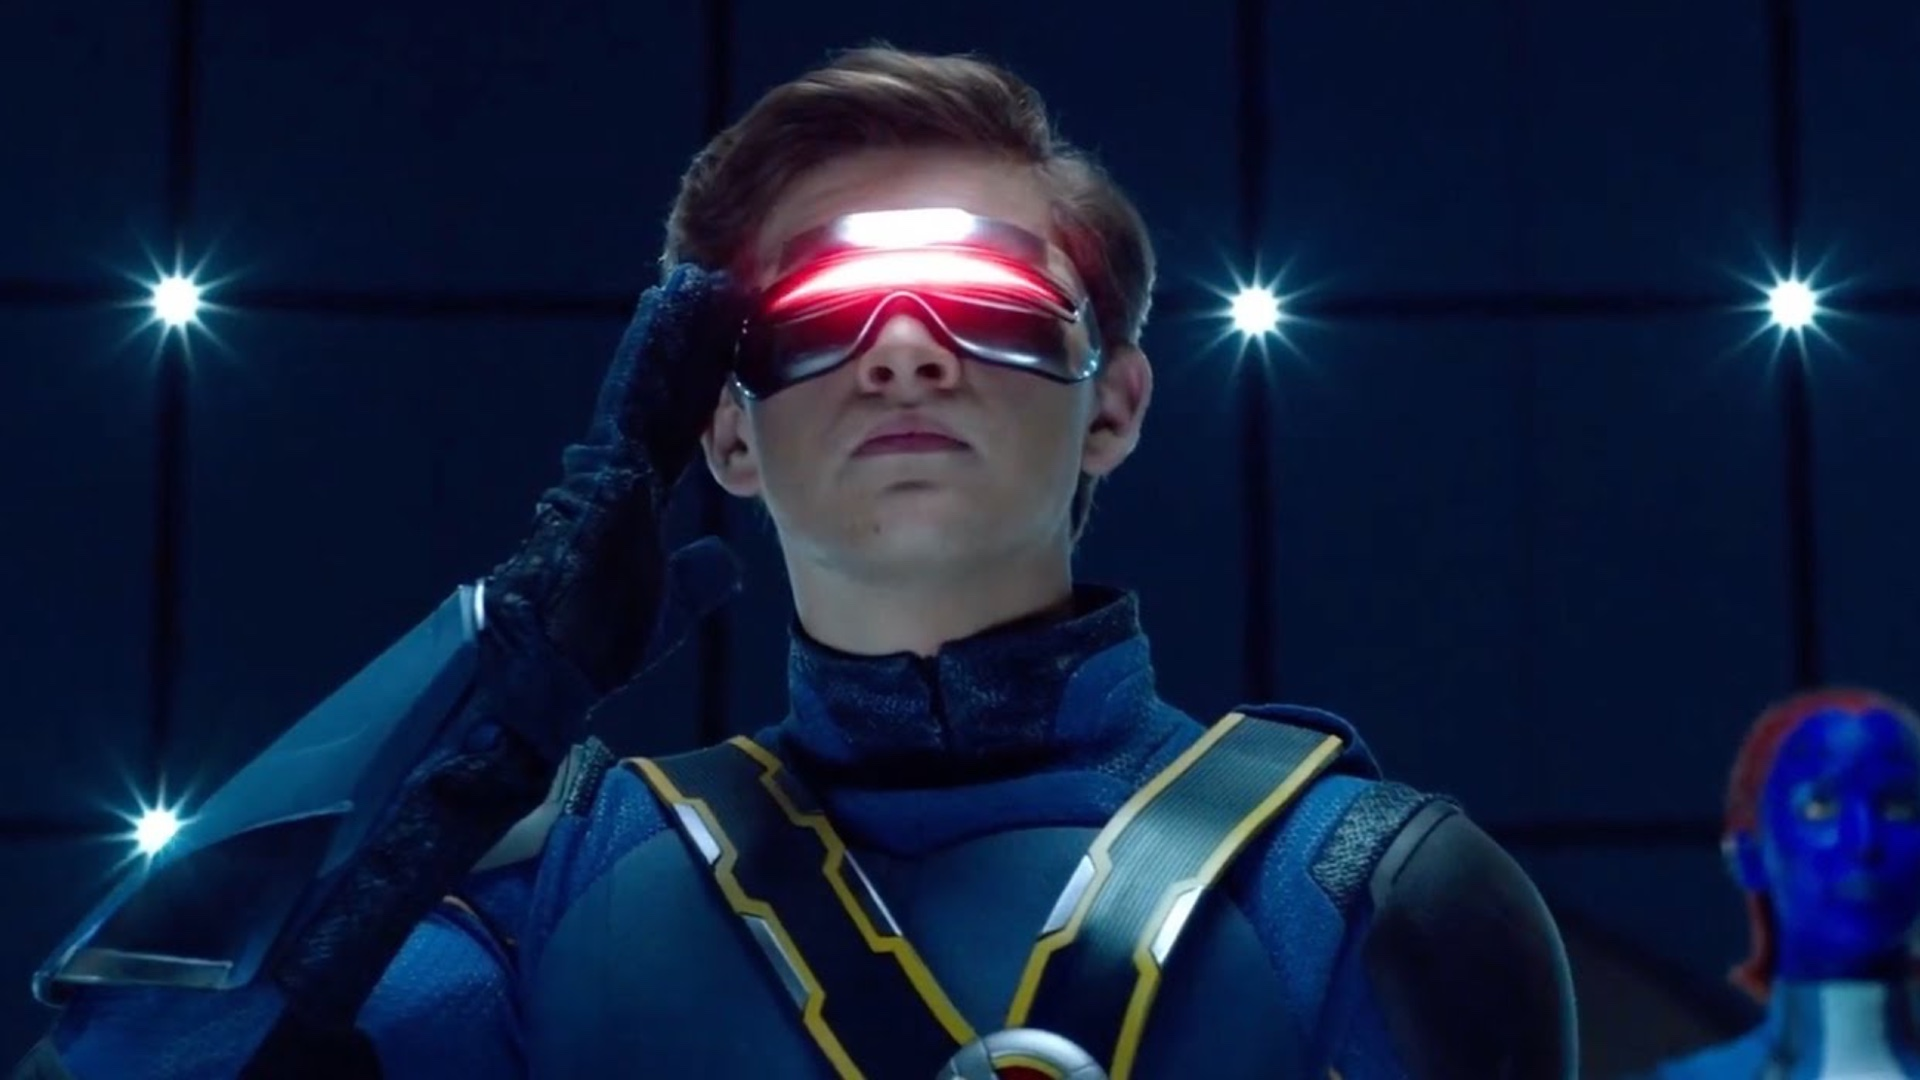 Tye Sheridan Cyclops X-Men Dark Phoenix